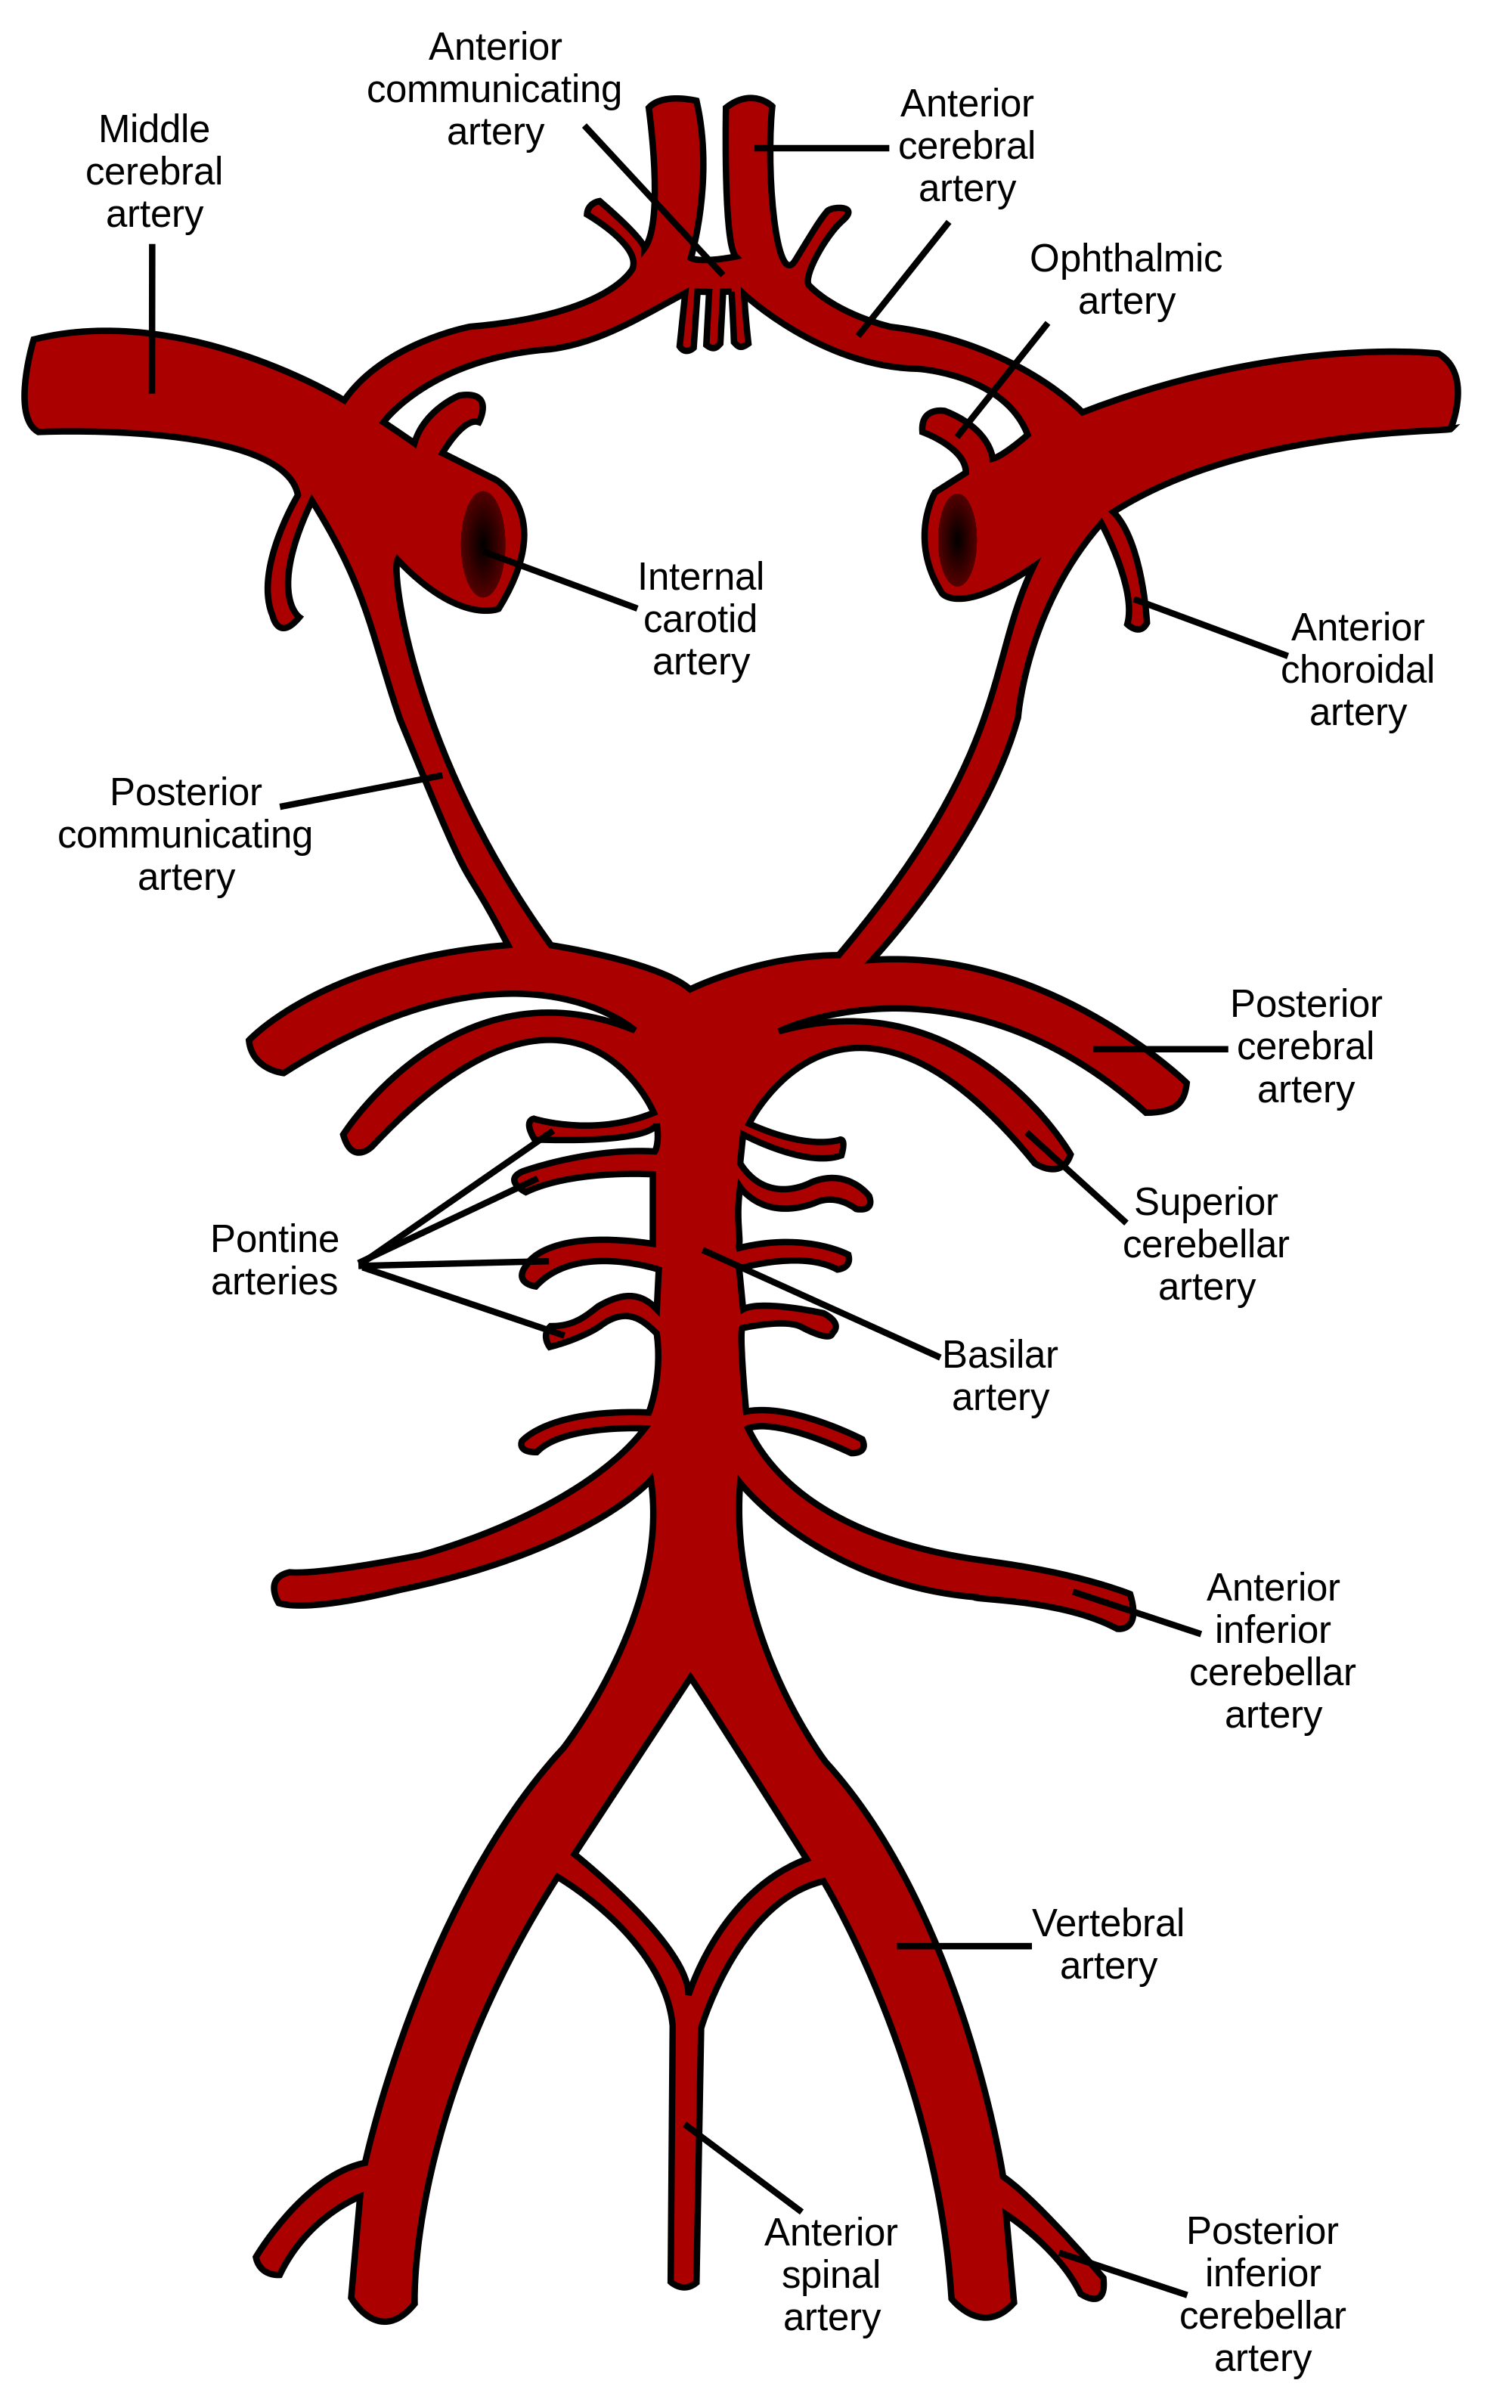 Vascular Anatomy Brain Circle Of Willis On Vascular System Anatomy ...